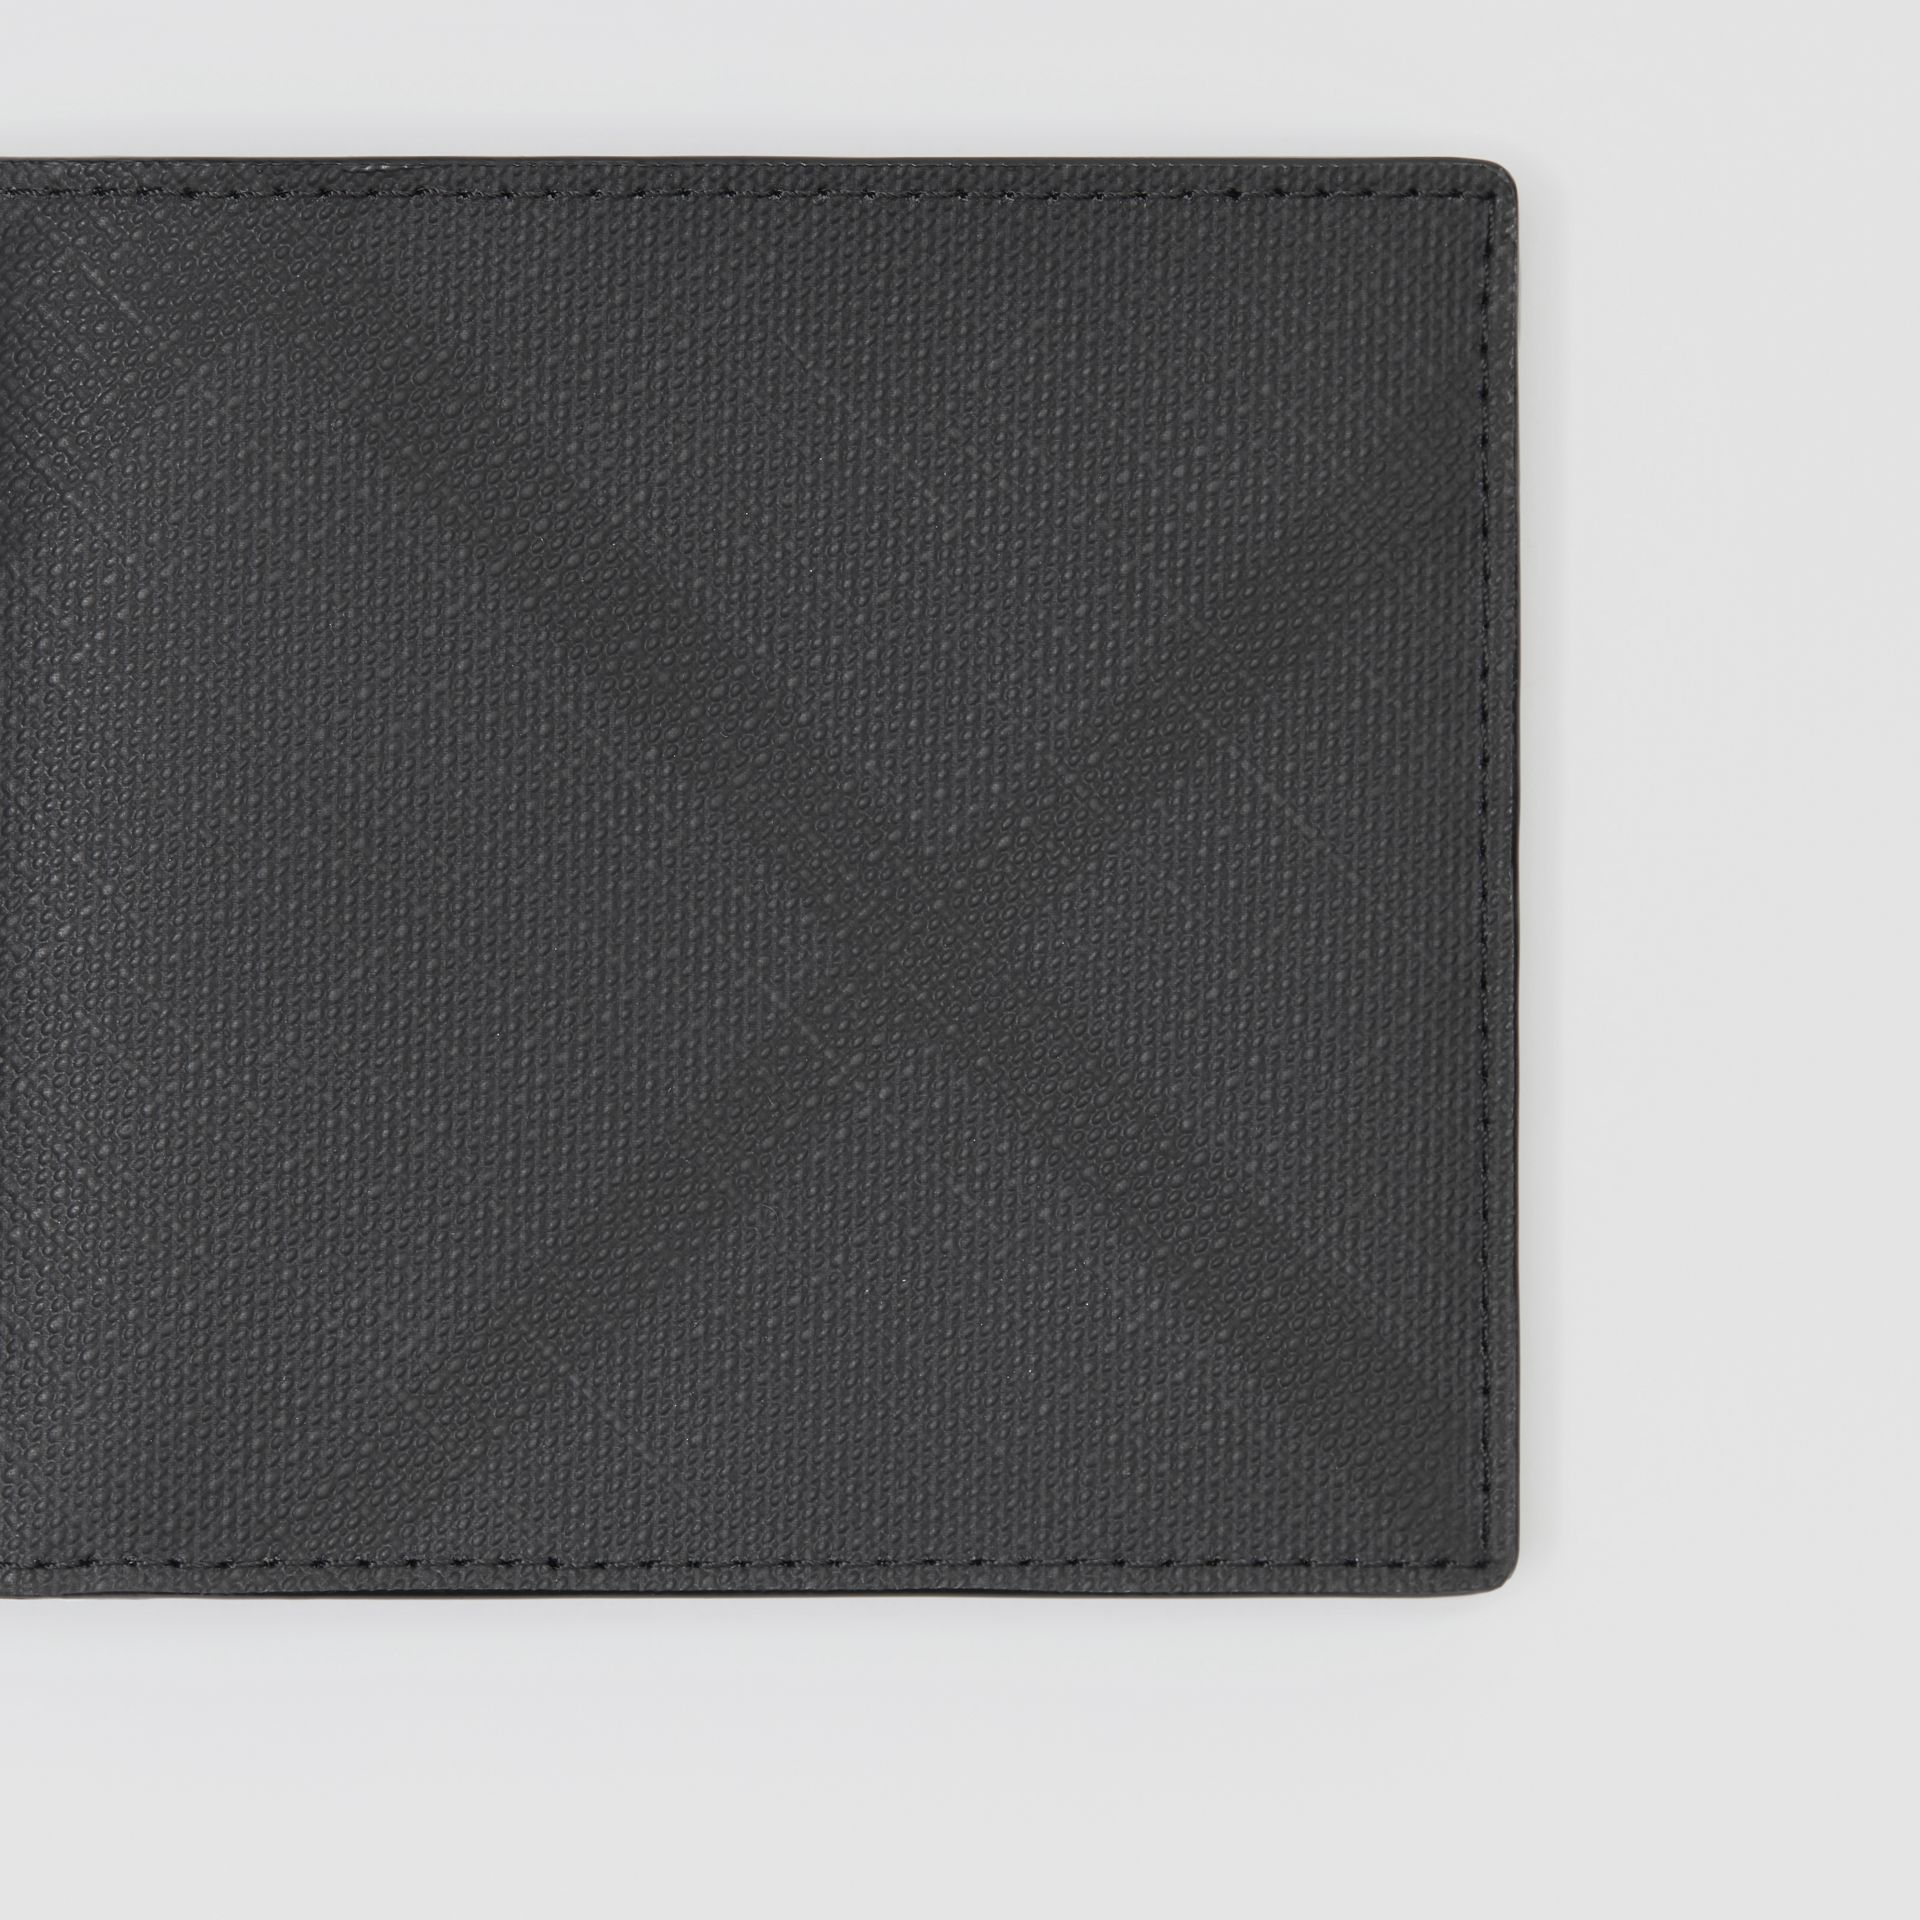 London Check and Leather International Bifold Wallet in Dark Charcoal - Men | Burberry United States - gallery image 1